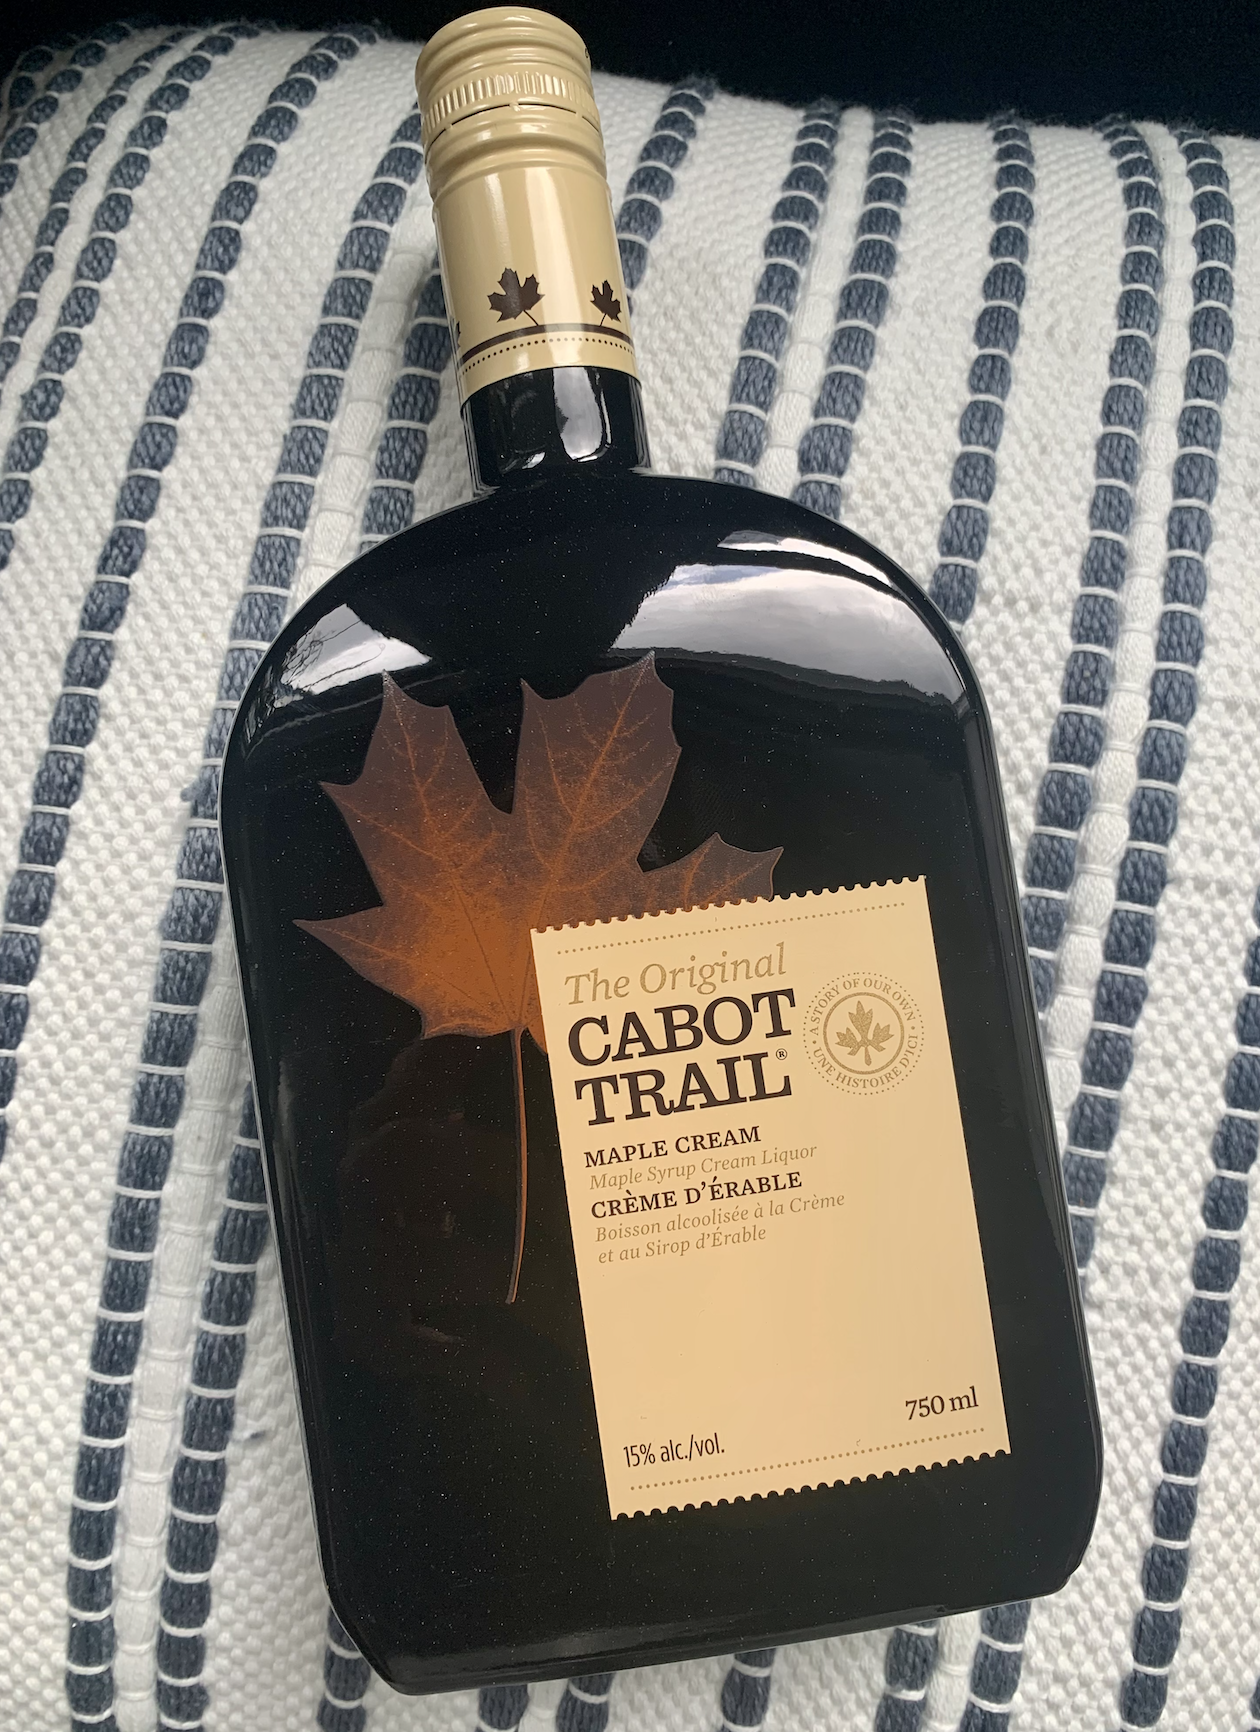 A bottle of Cabot Trail Maple Cream against a blue and white fabric.